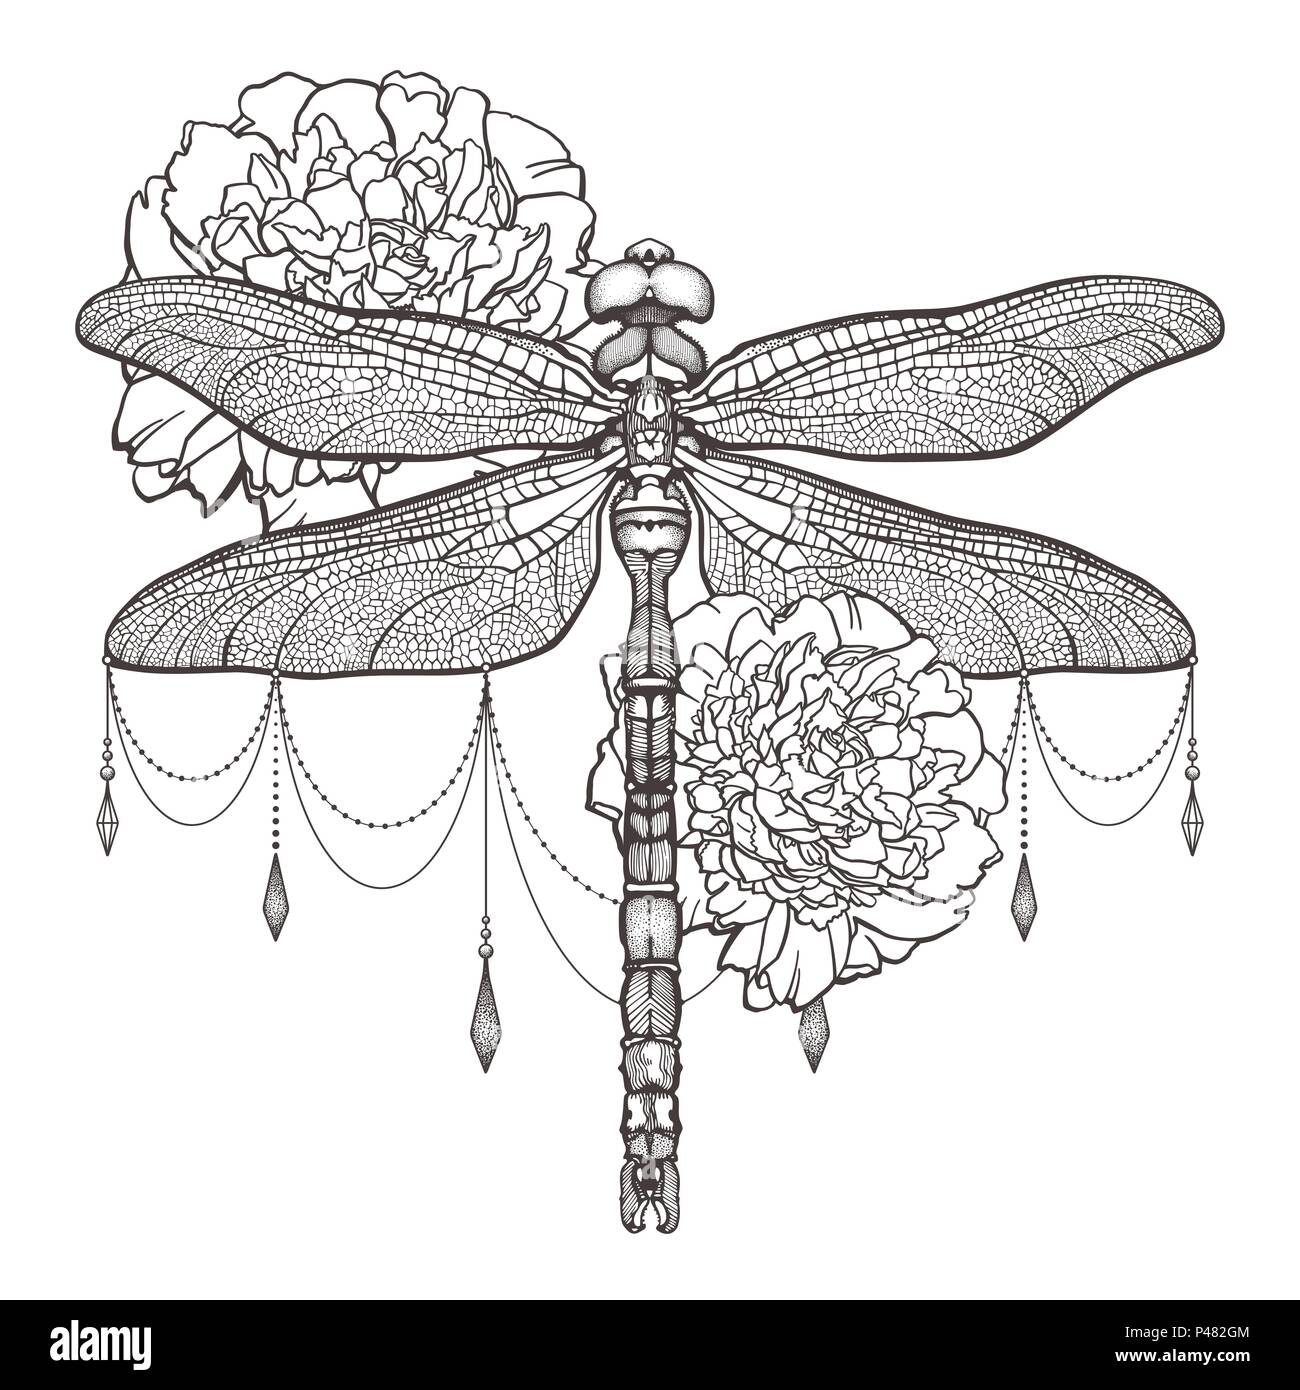 dragonfly print photos dragonfly print images alamy. Black Bedroom Furniture Sets. Home Design Ideas